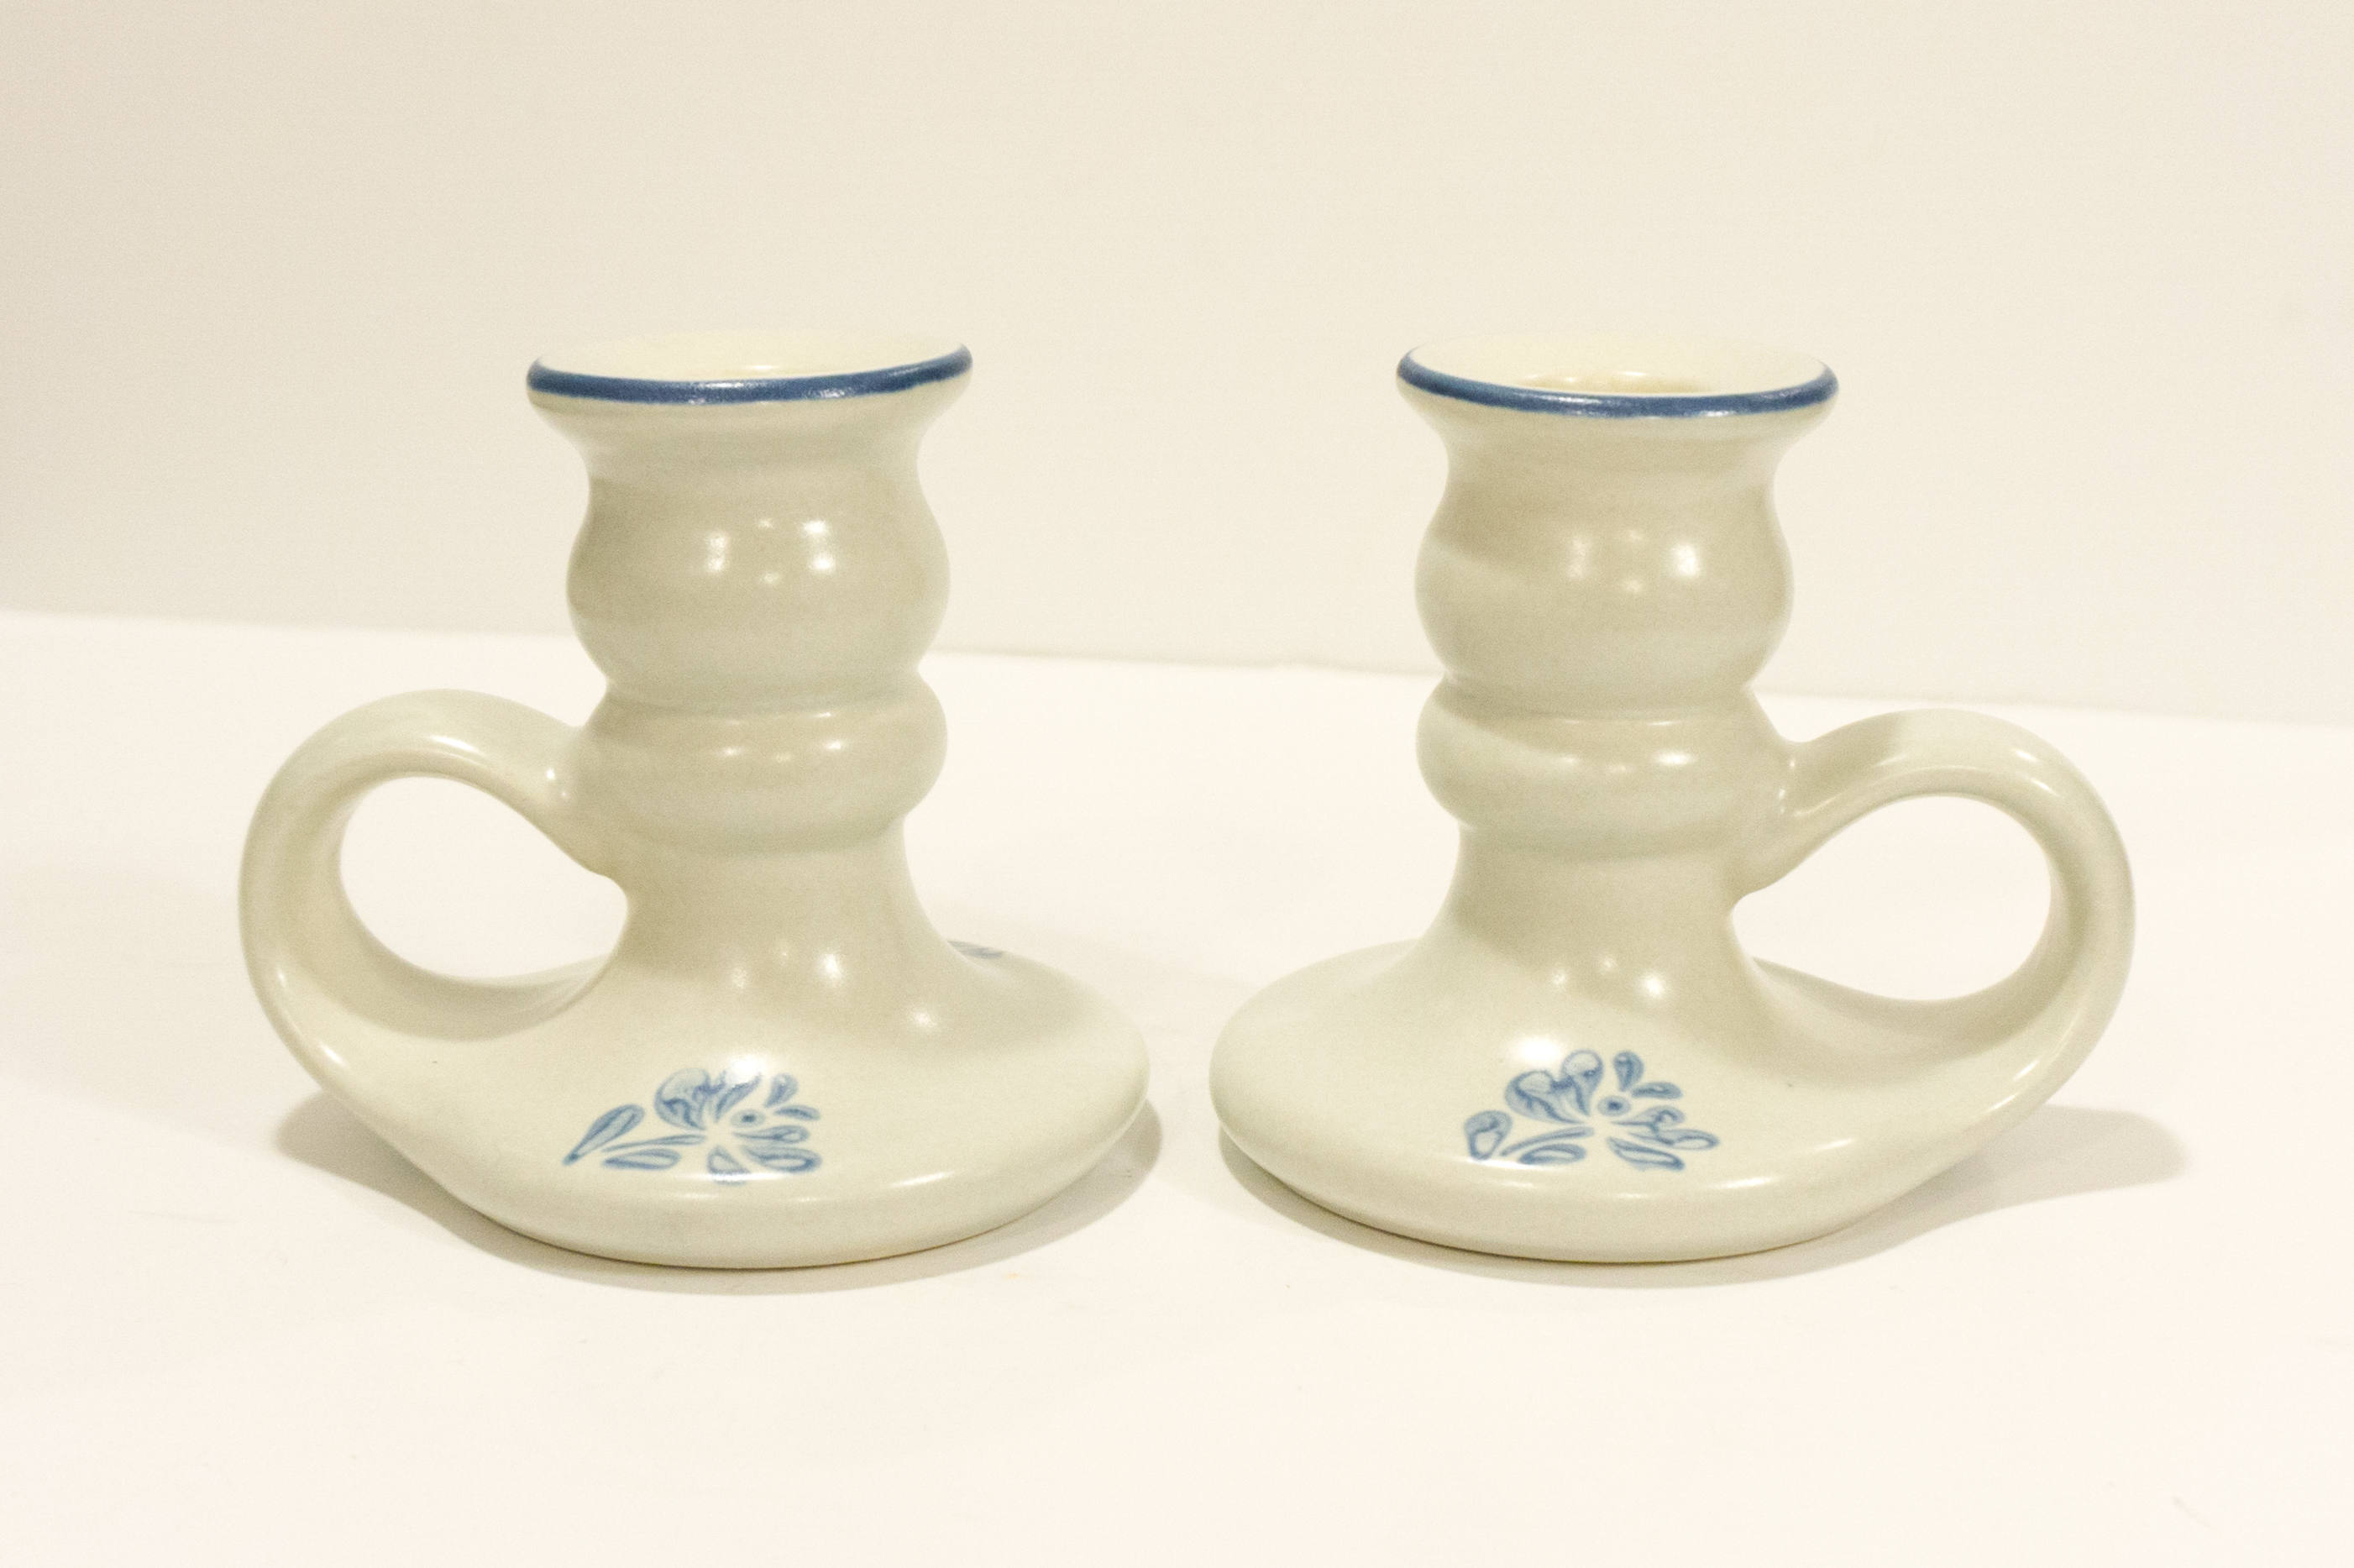 Vintage Pair of Handled Candleholder in Yorktowne (USA) by Pfaltzgraff